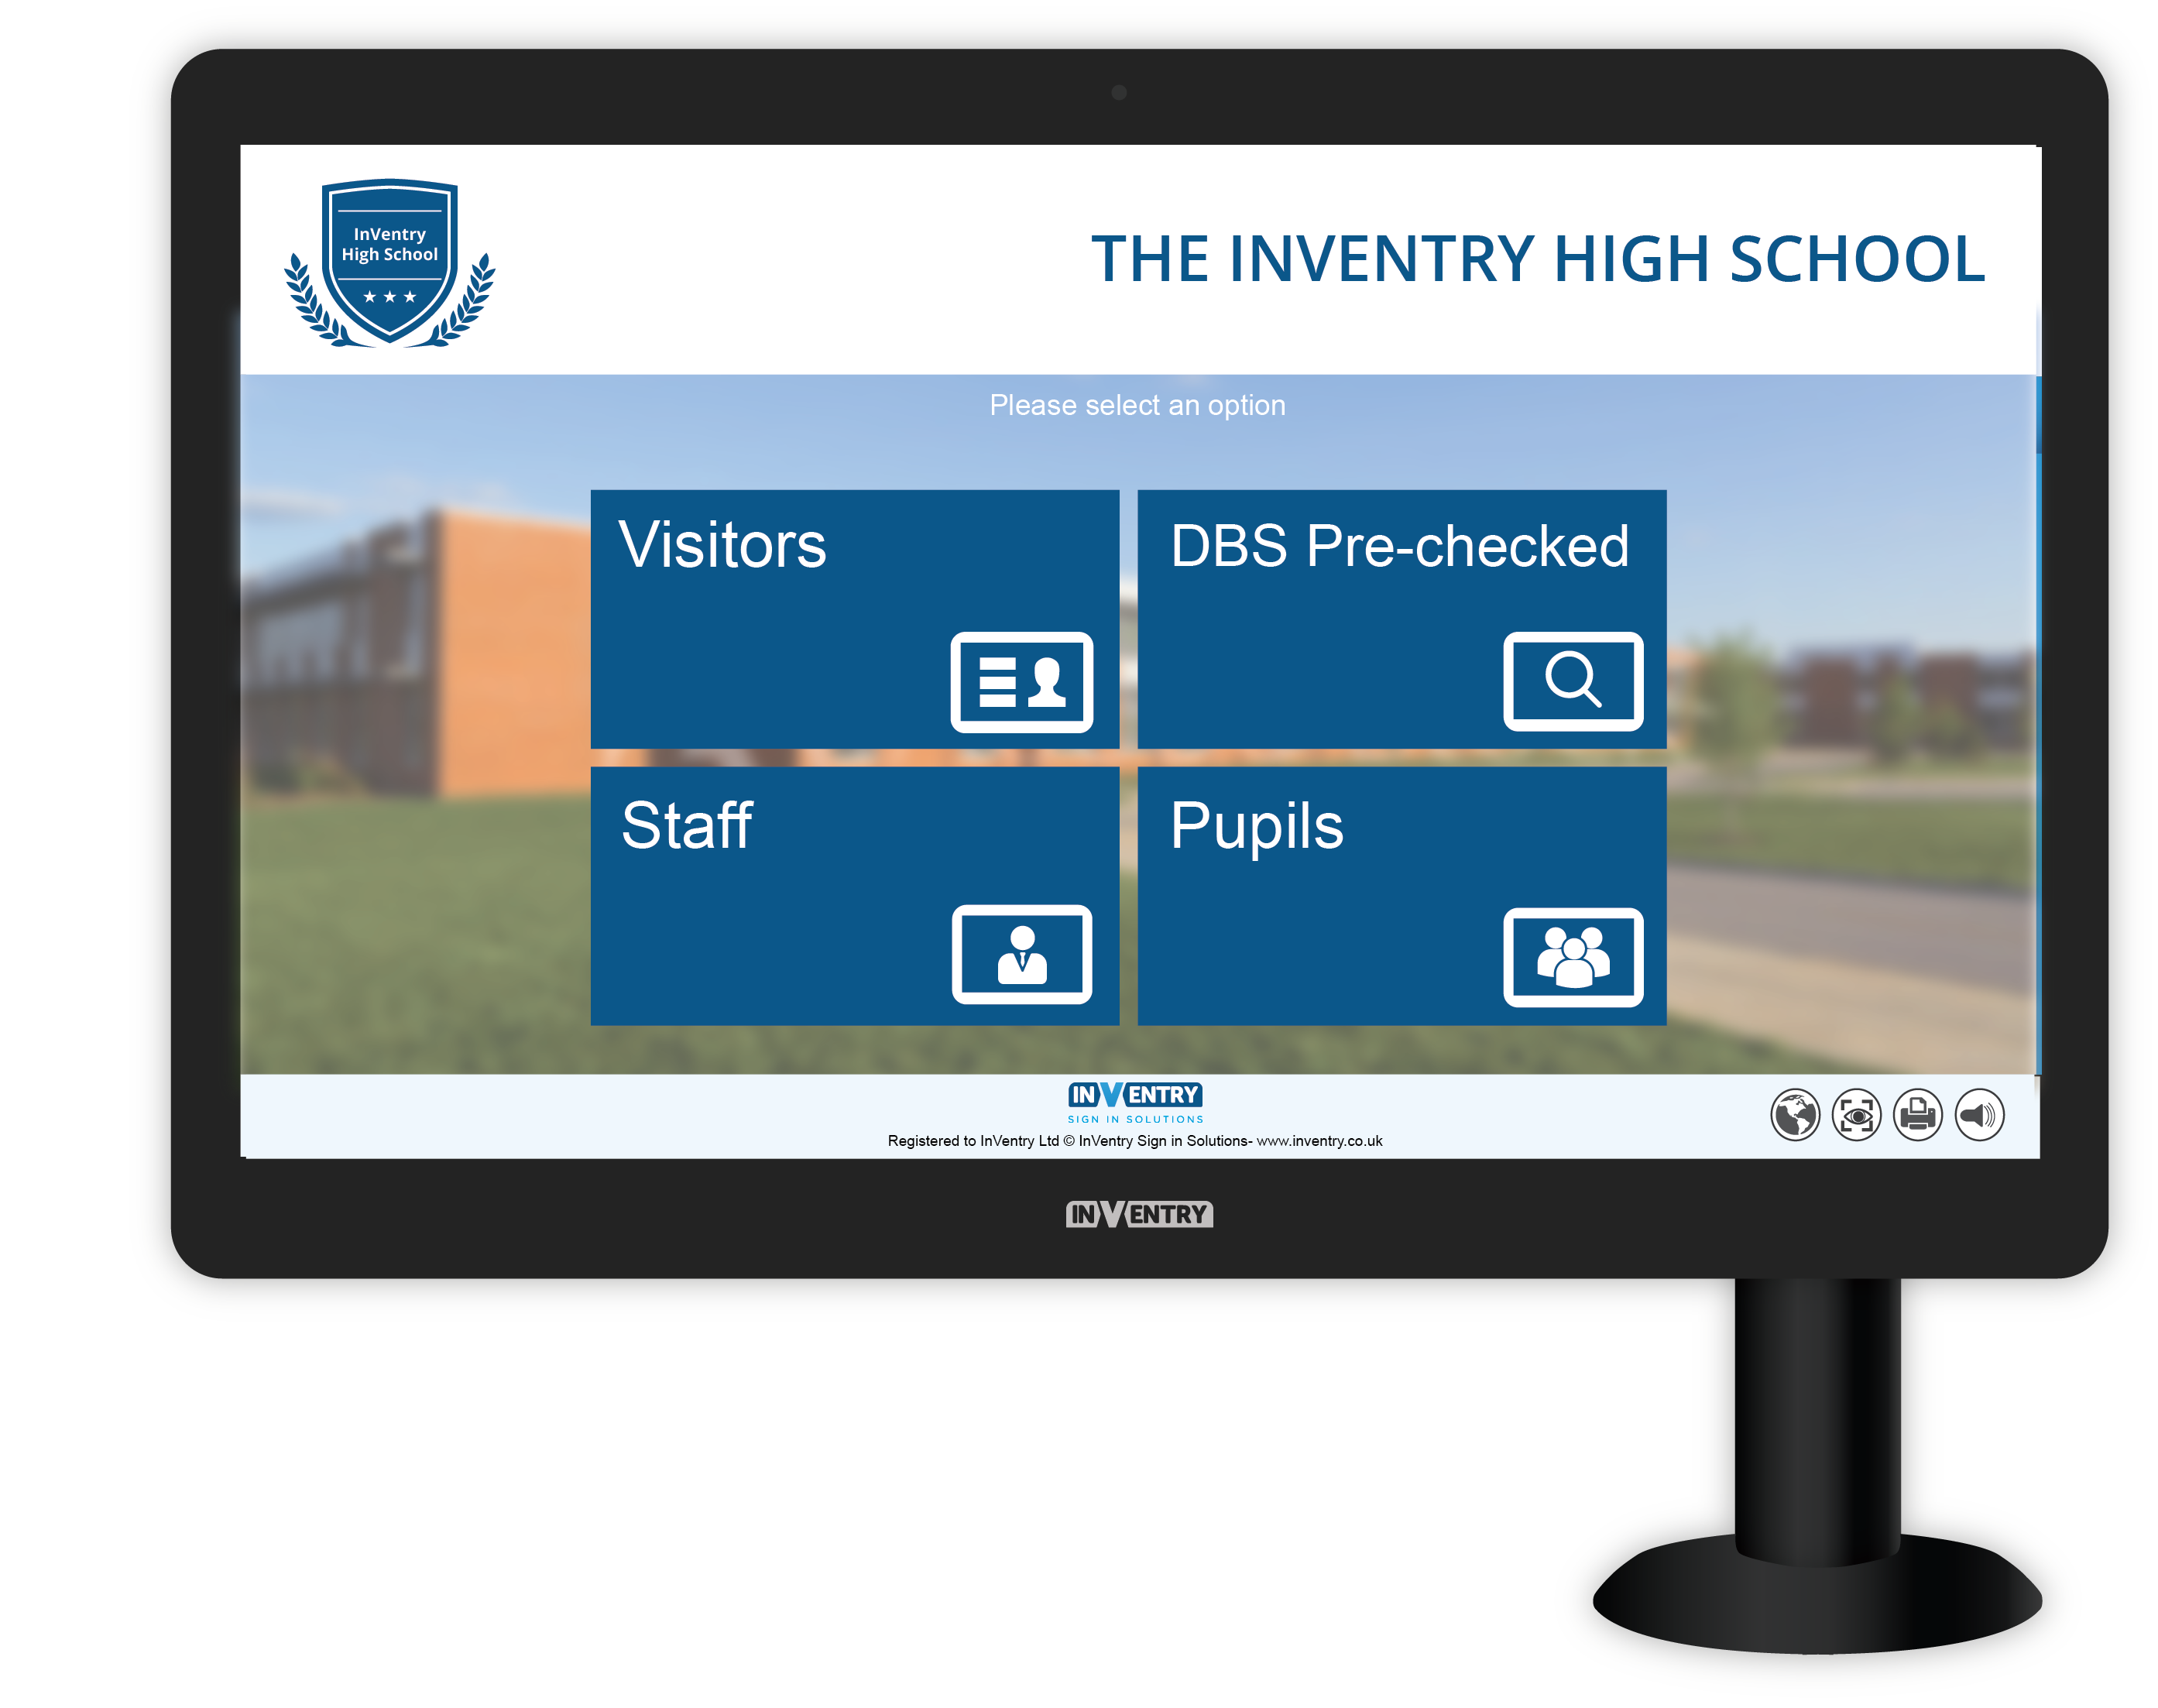 InVentry Sign In Soltuions